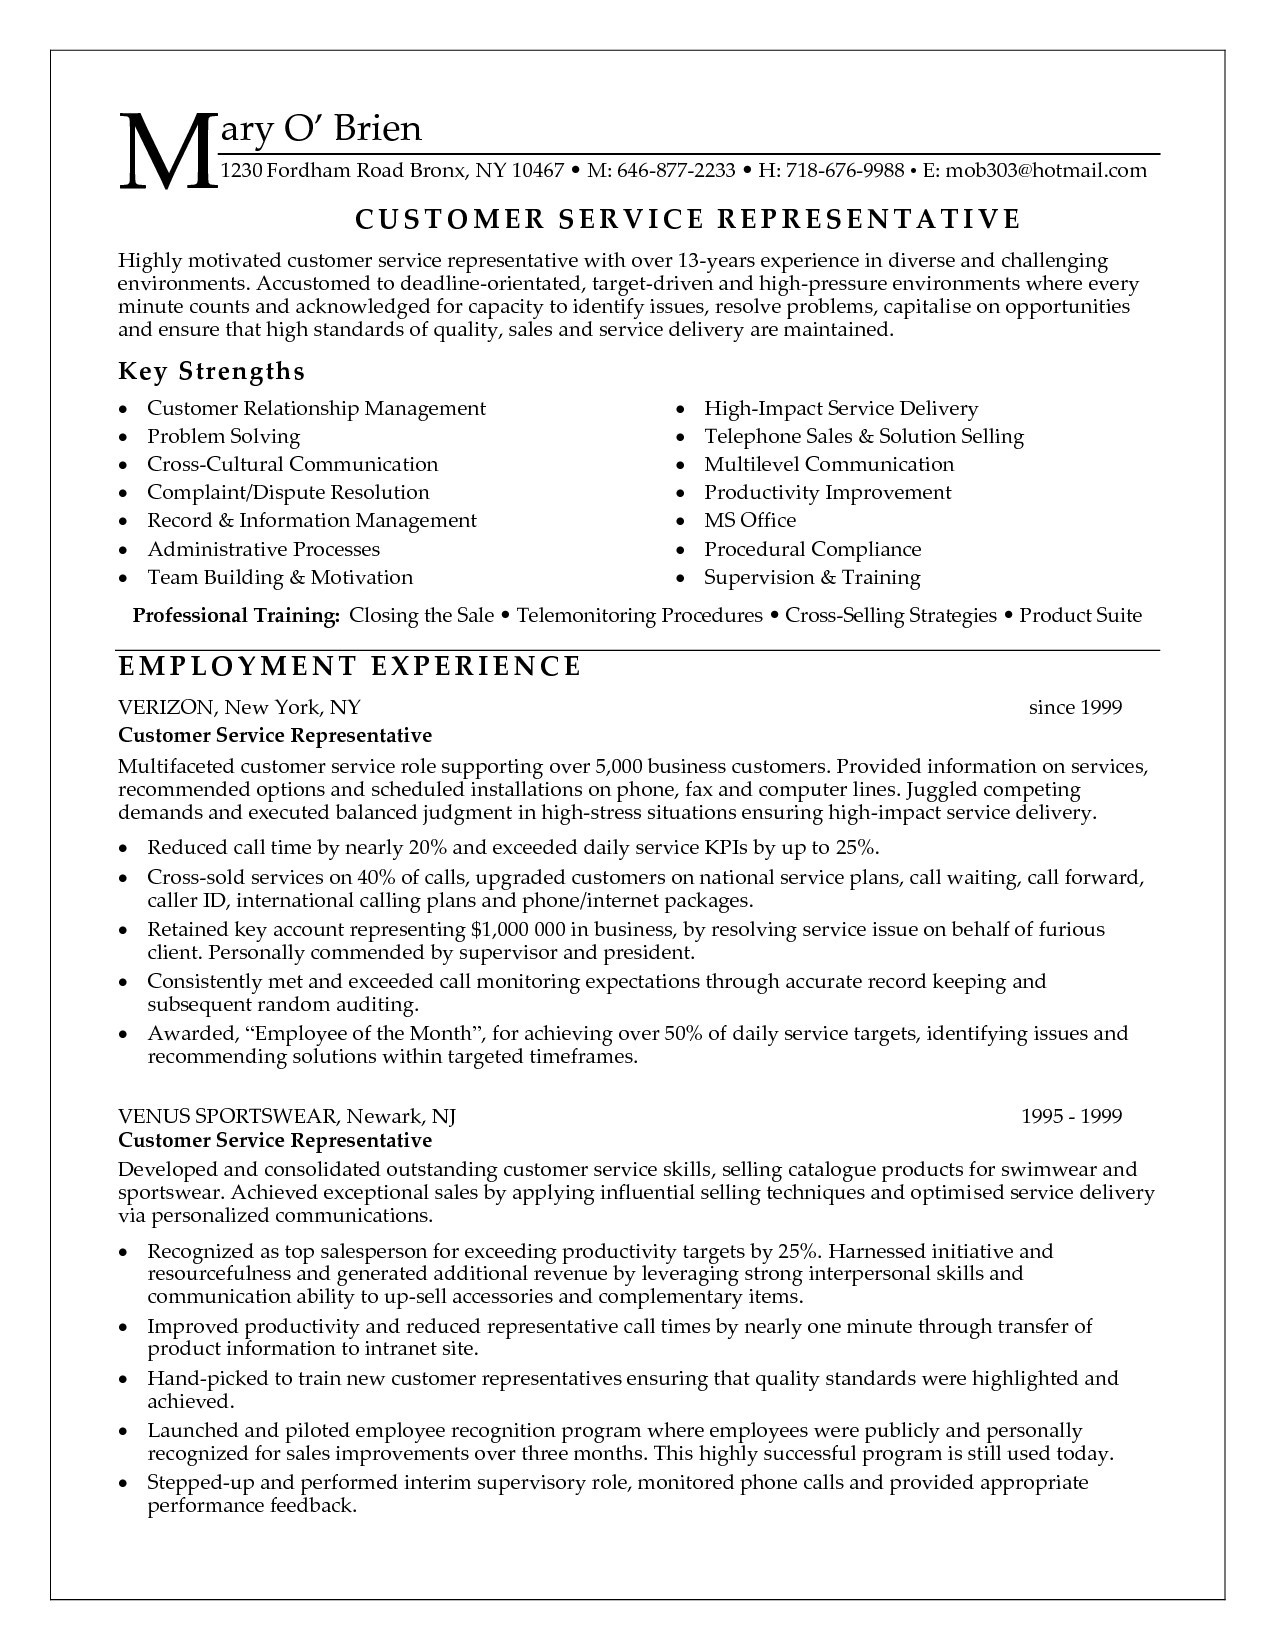 Customer Service Representative Skills Resume - Resume Skills Examples Customer Service Best Best Sample College